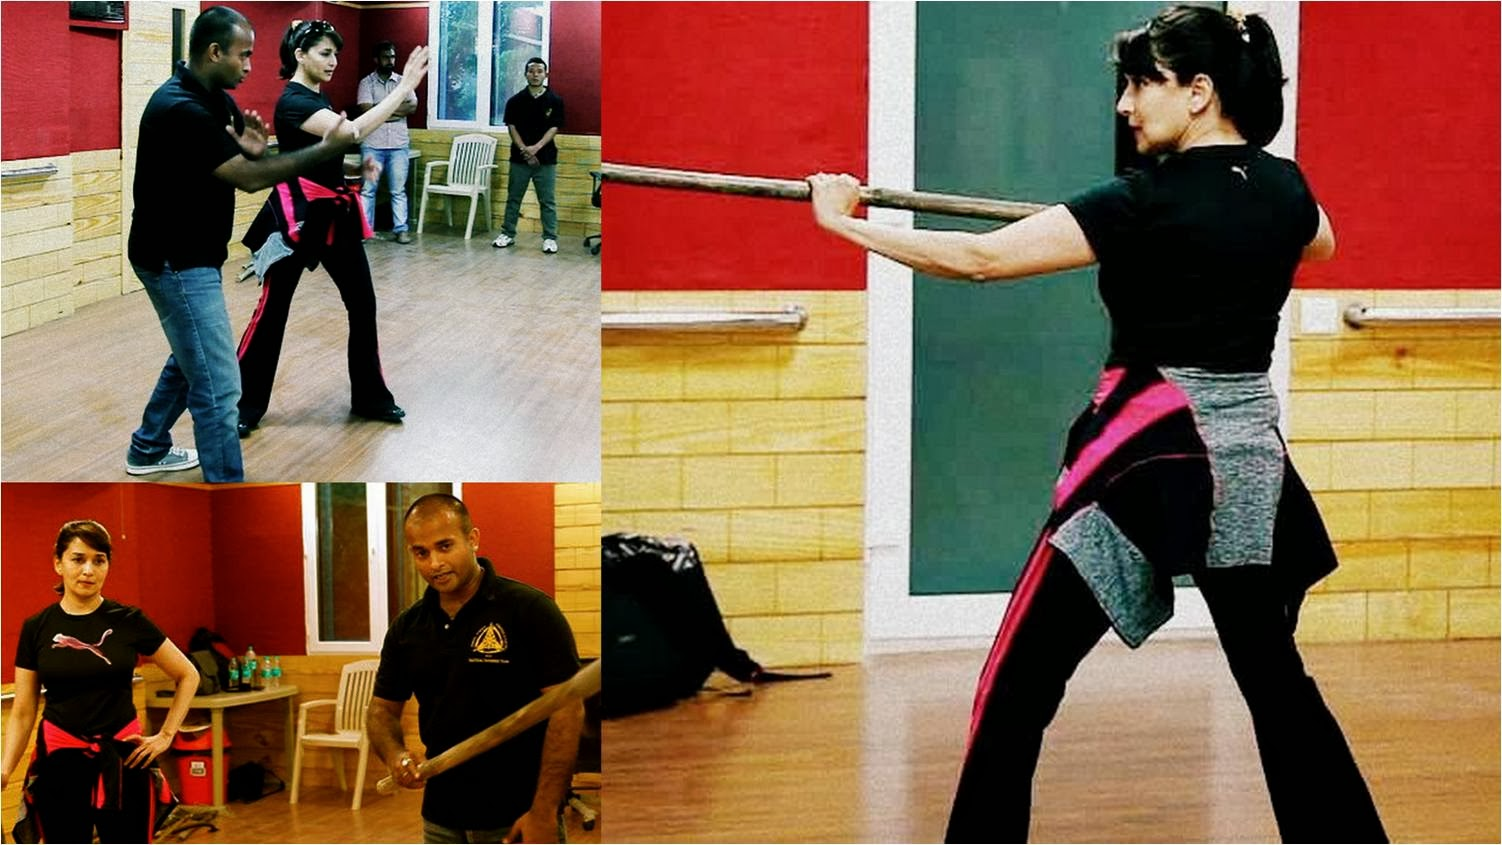 Preparations by the Madhuri Dixit for Gulaab Gang movie